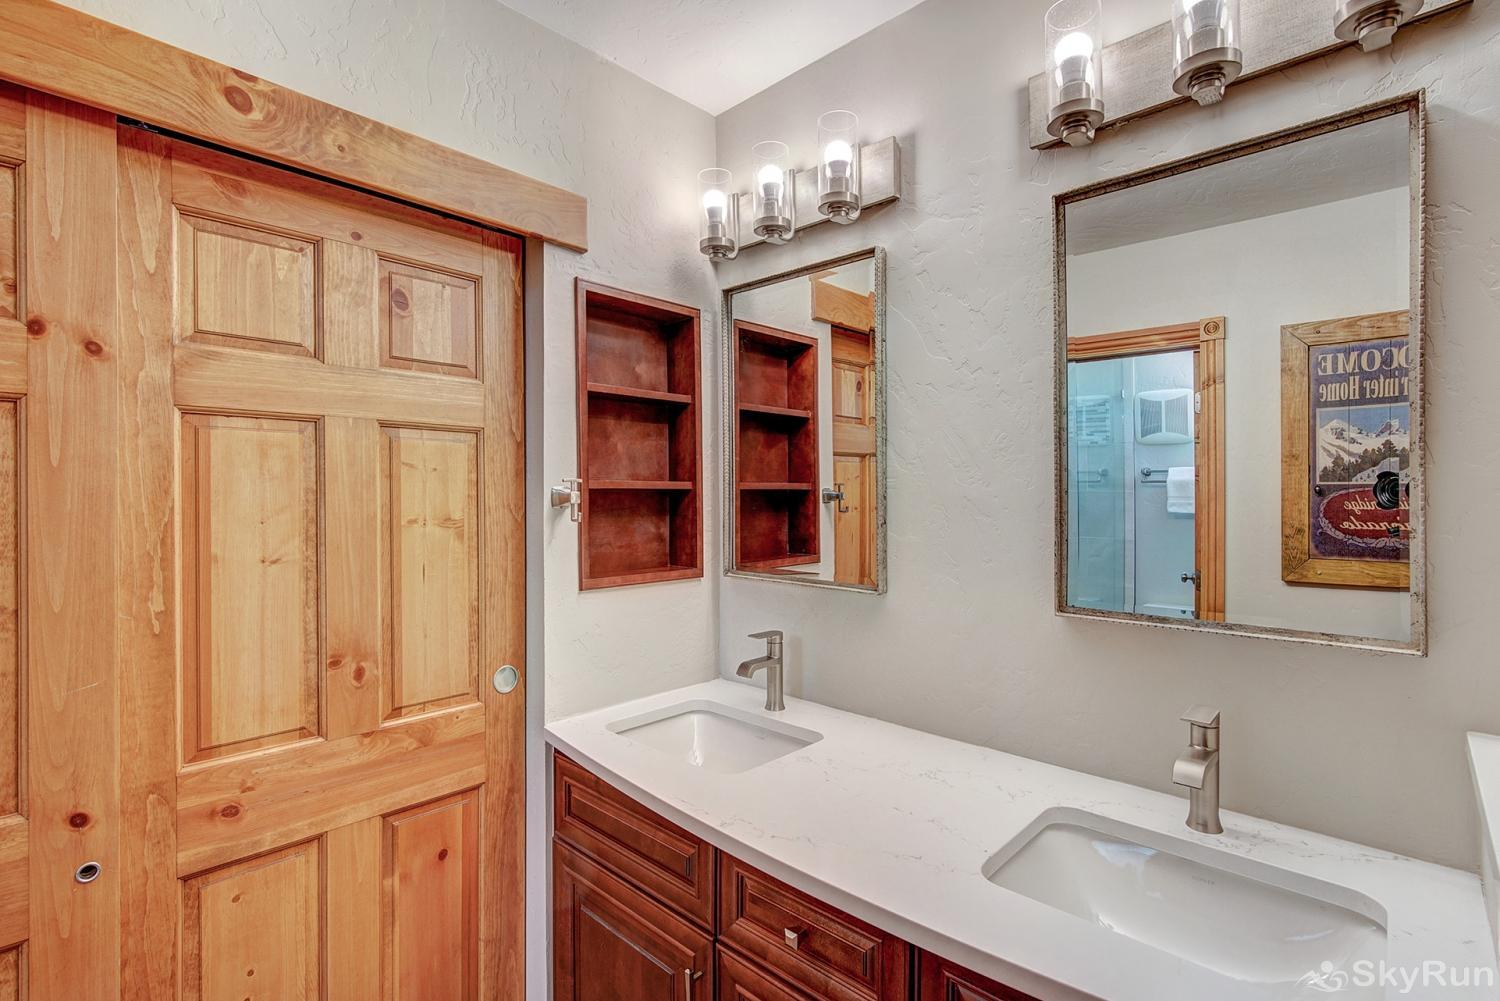 Powderhorn C302 Newly remodeled master bath with double vanity, quartz counter